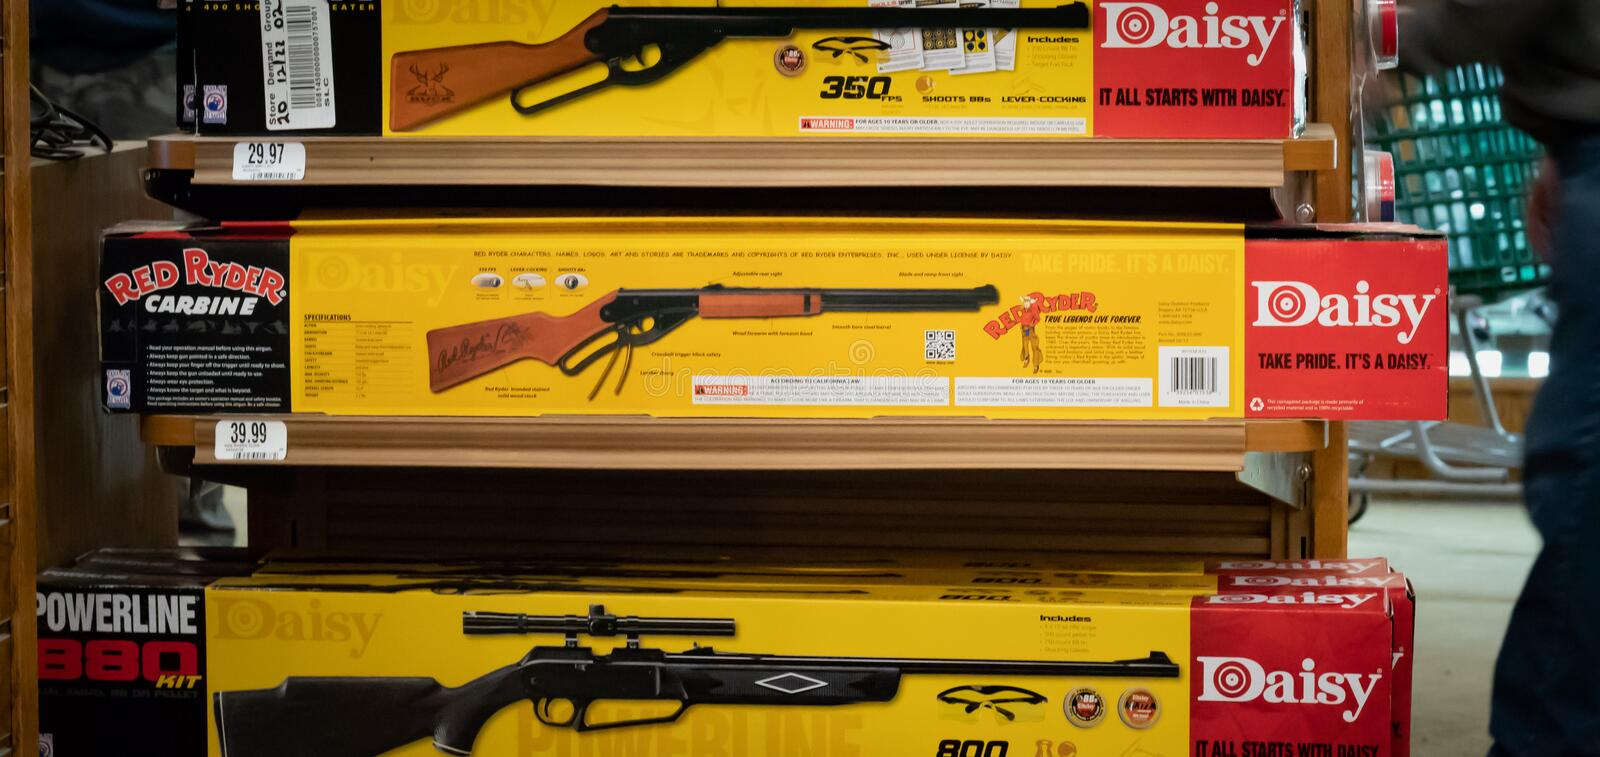 The Official Red Ryder BB Gun by Daisy/Illustrative Editorial stock images